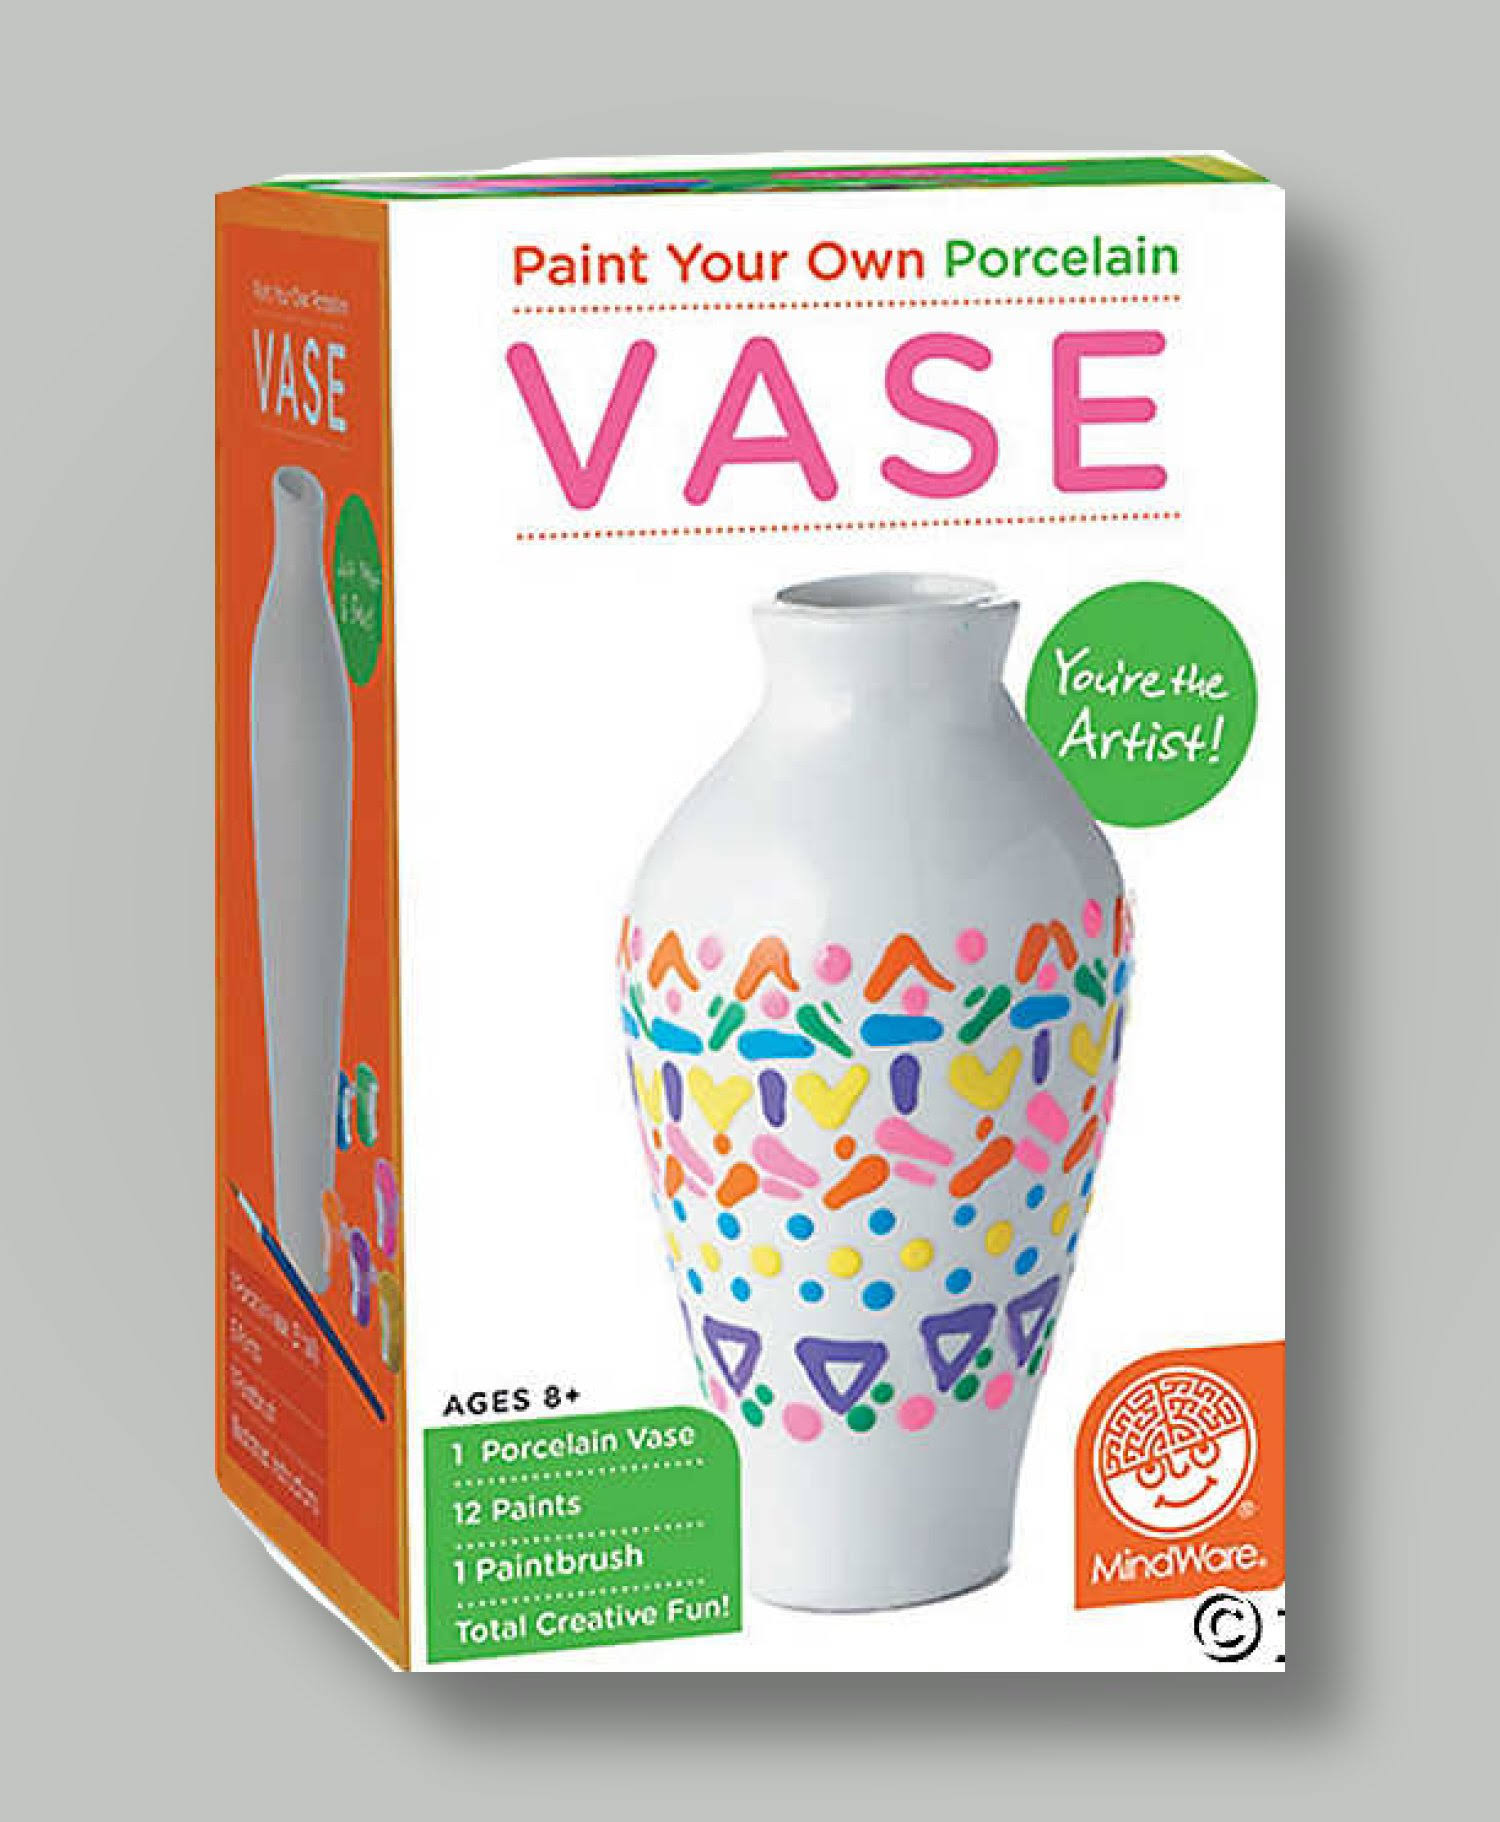 MindWare Paint Your Own Porcelain Vase